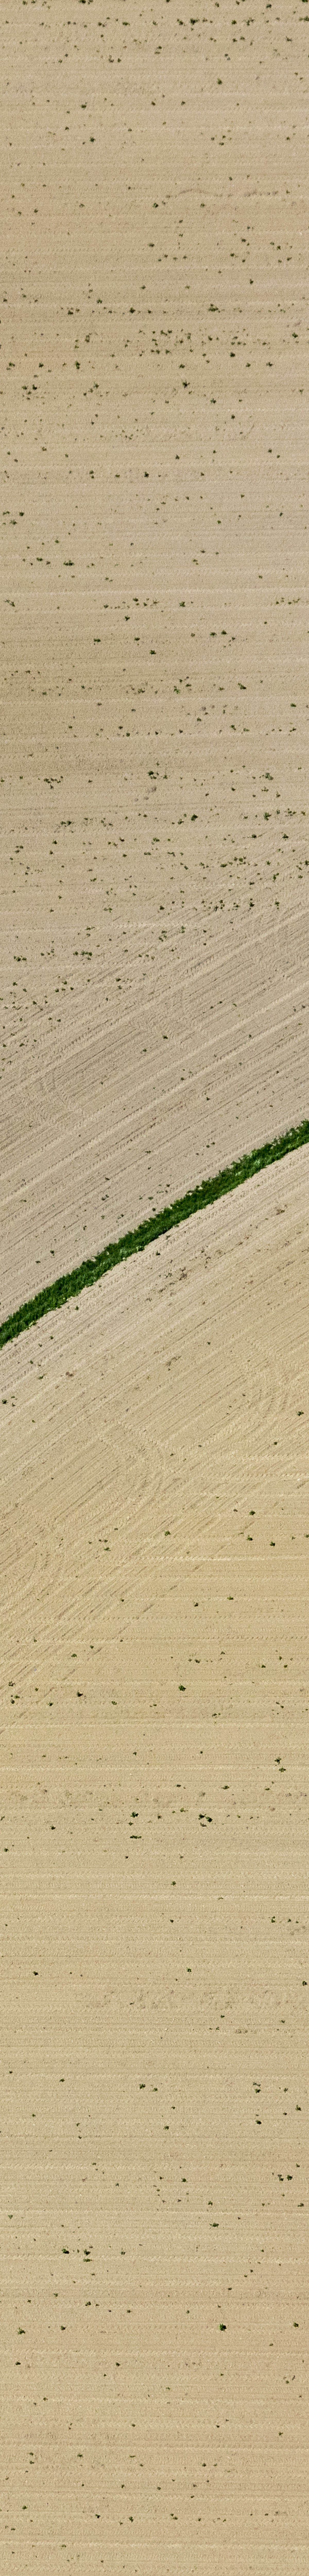 Aerial view of a narrow drainage ditch in the field - Klaus Leidorf Aerial Photography